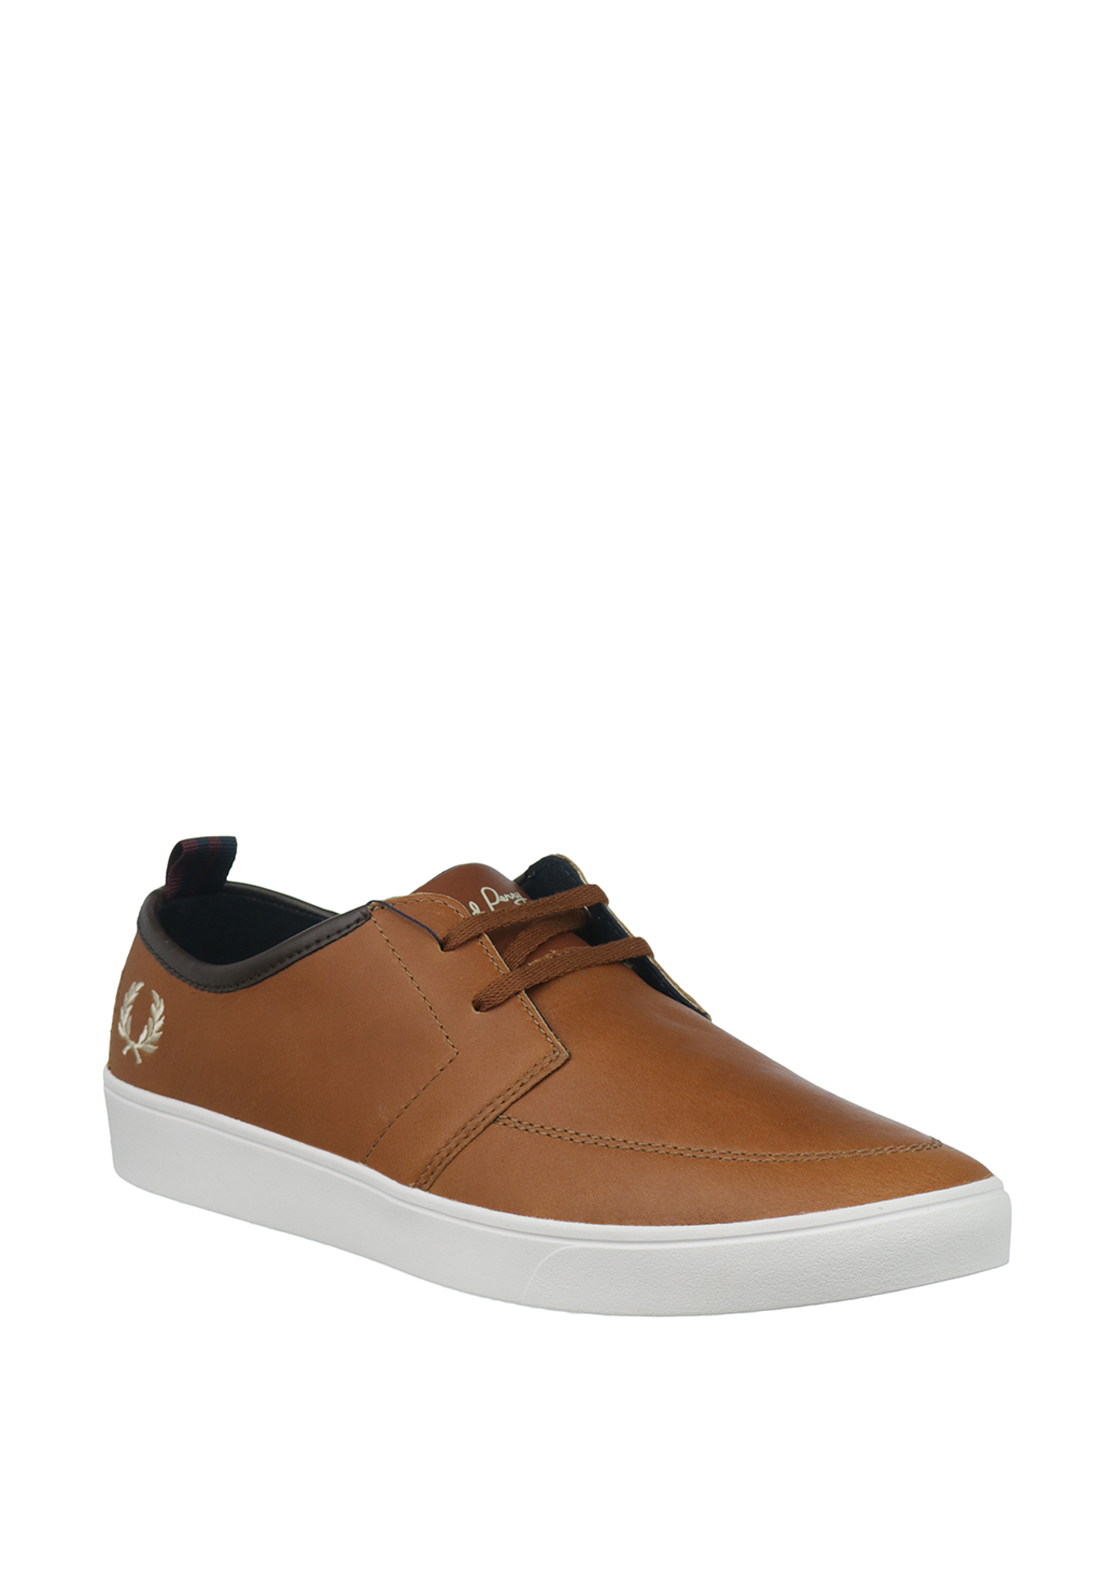 Fred Perry Shields Leather Loafer Trainers, Tan